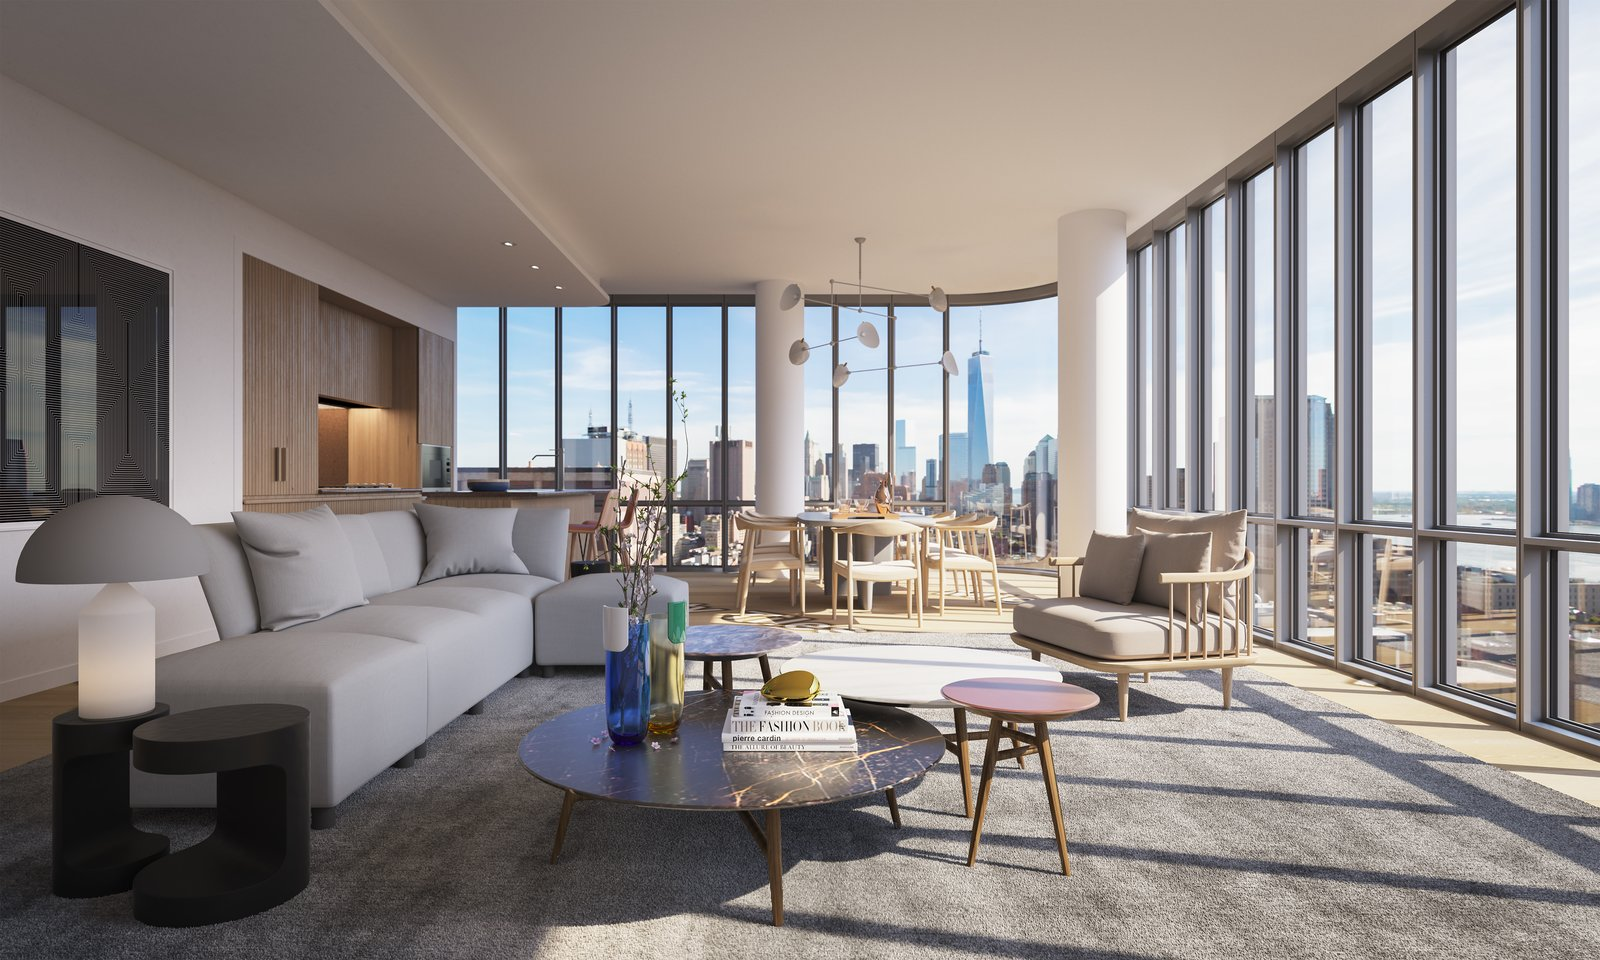 Photo 1 of 9 in Renzo Piano Building Workshop Brings a New Residential Destination to Soho